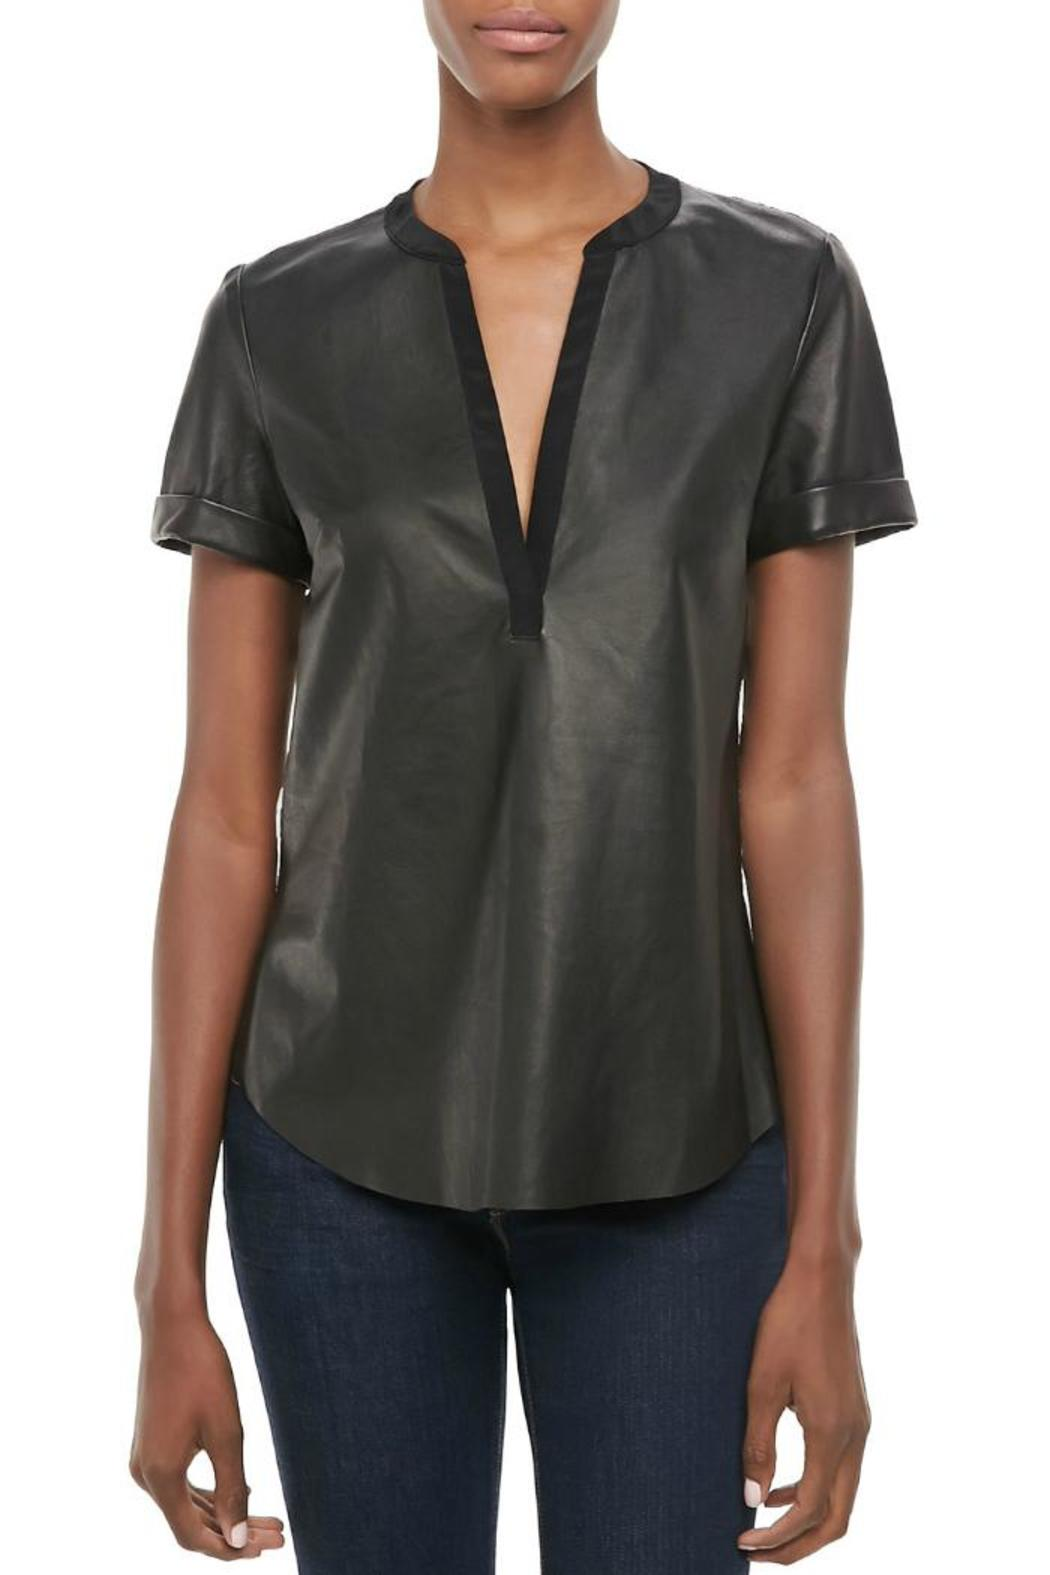 Twelfth Street by Cynthia Vincent Faux Leather Henley - Main Image